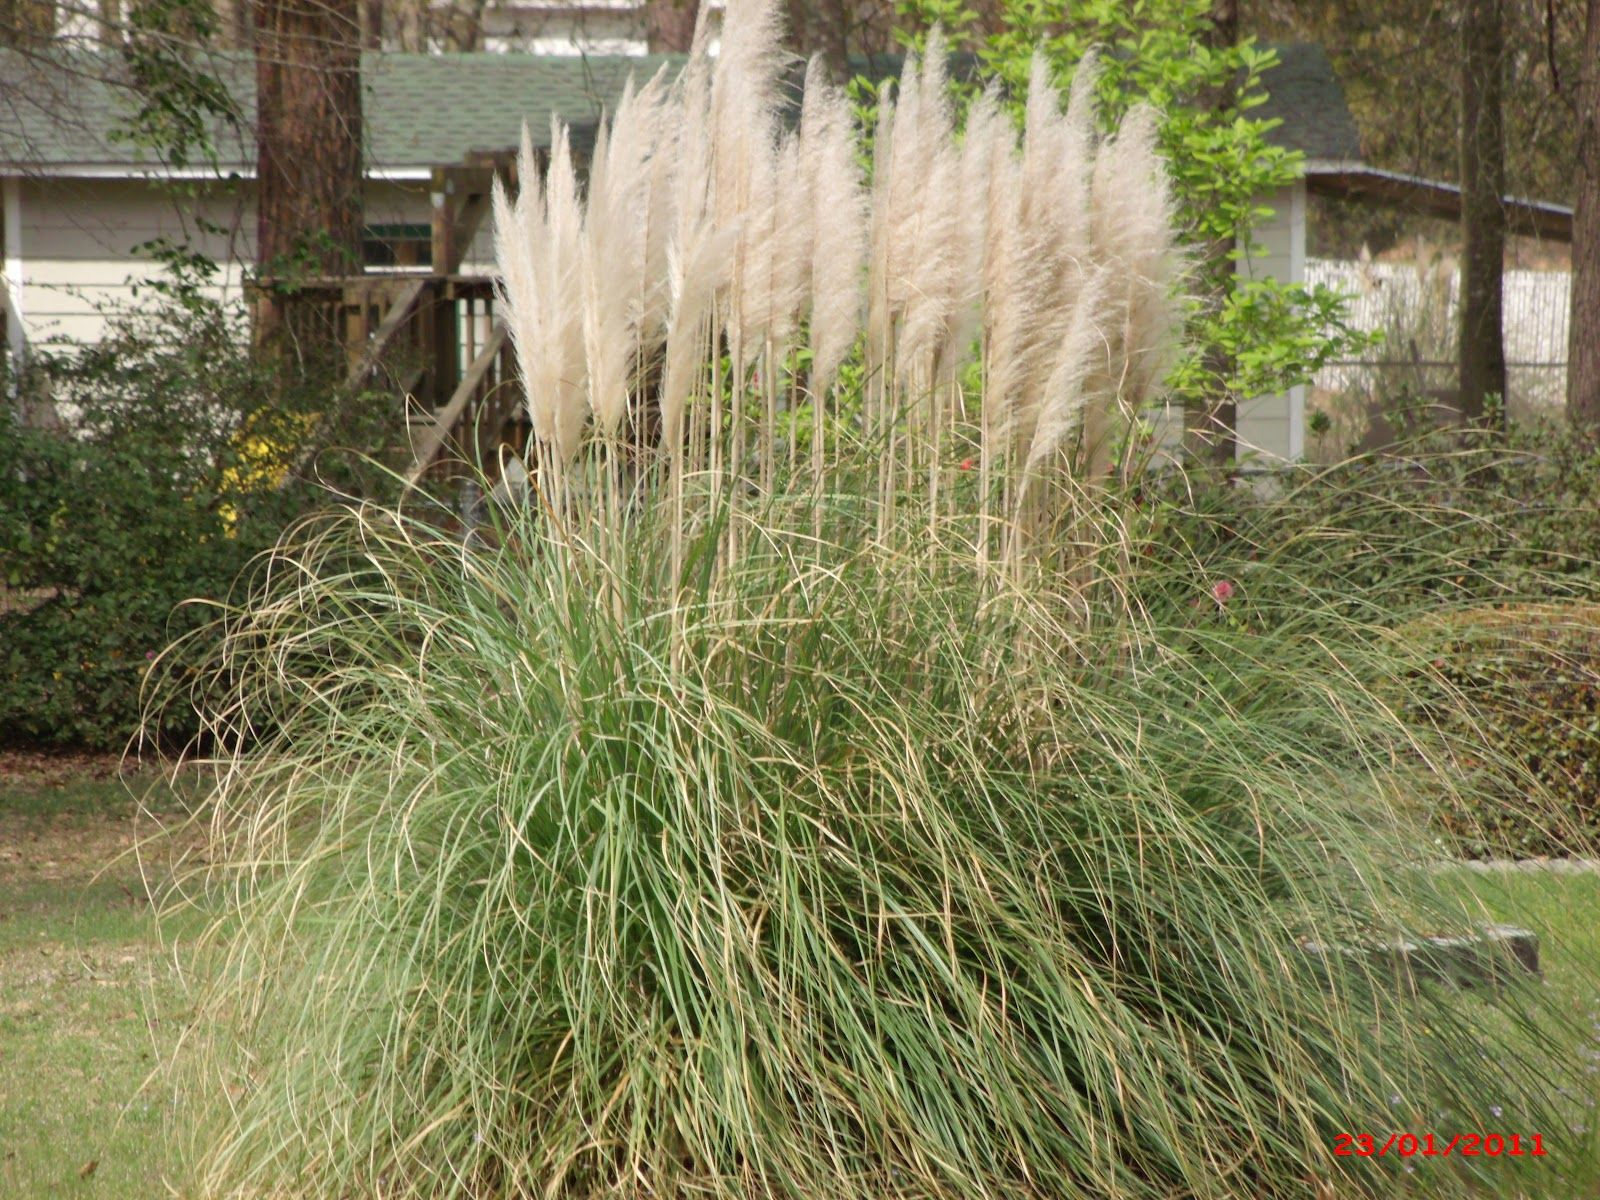 Ornamental grass like this pampas grass are popular for Ornamental garden features